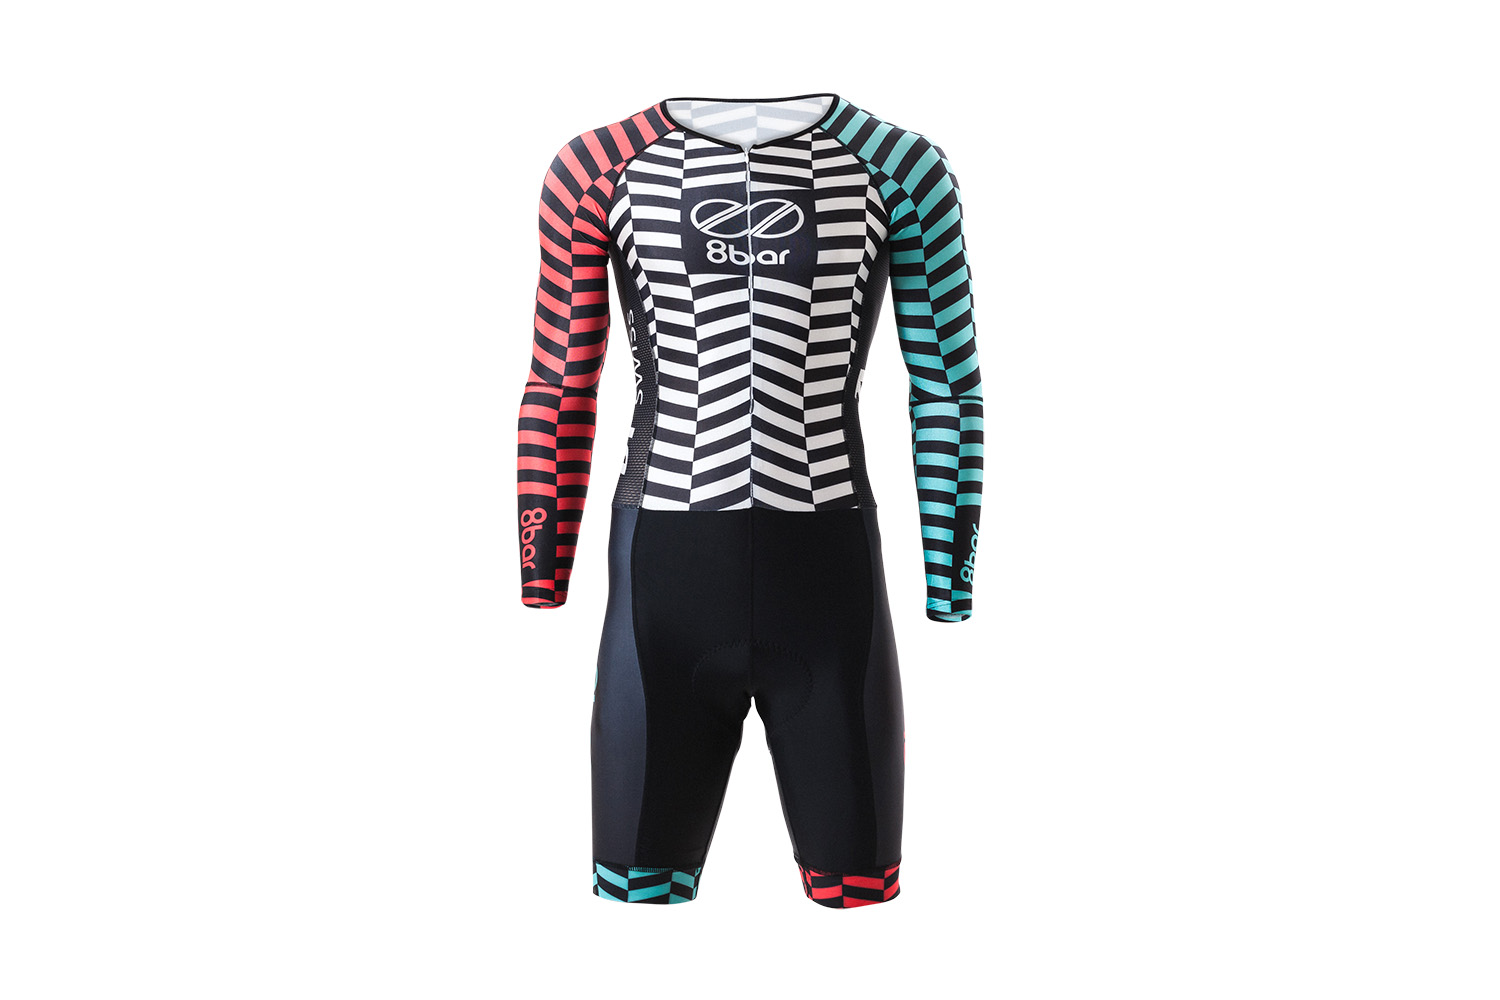 8bar-skinsuit-rookies-men-fixie-fixedgear-1